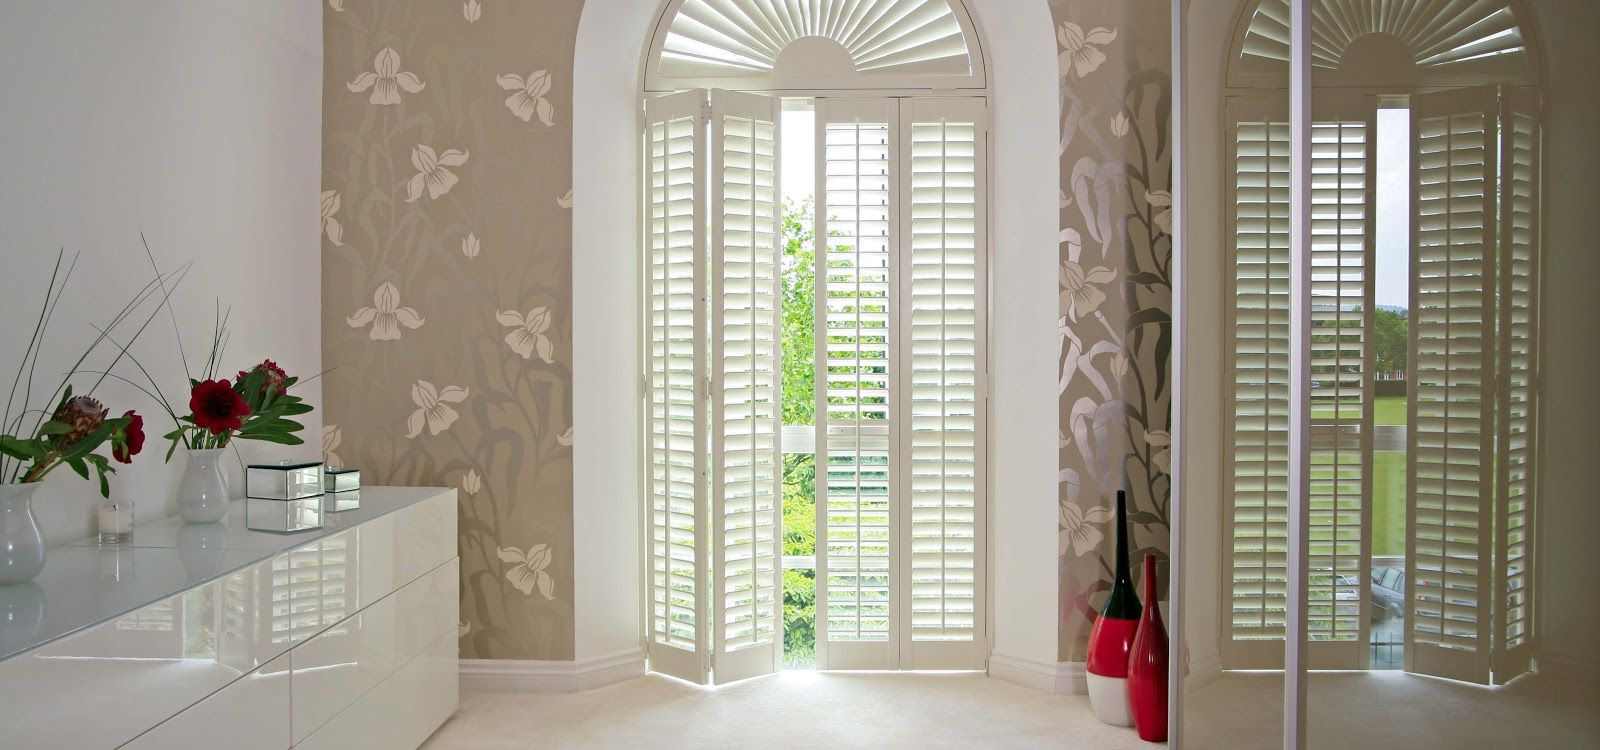 If you are looking for the best bespoke shutters in